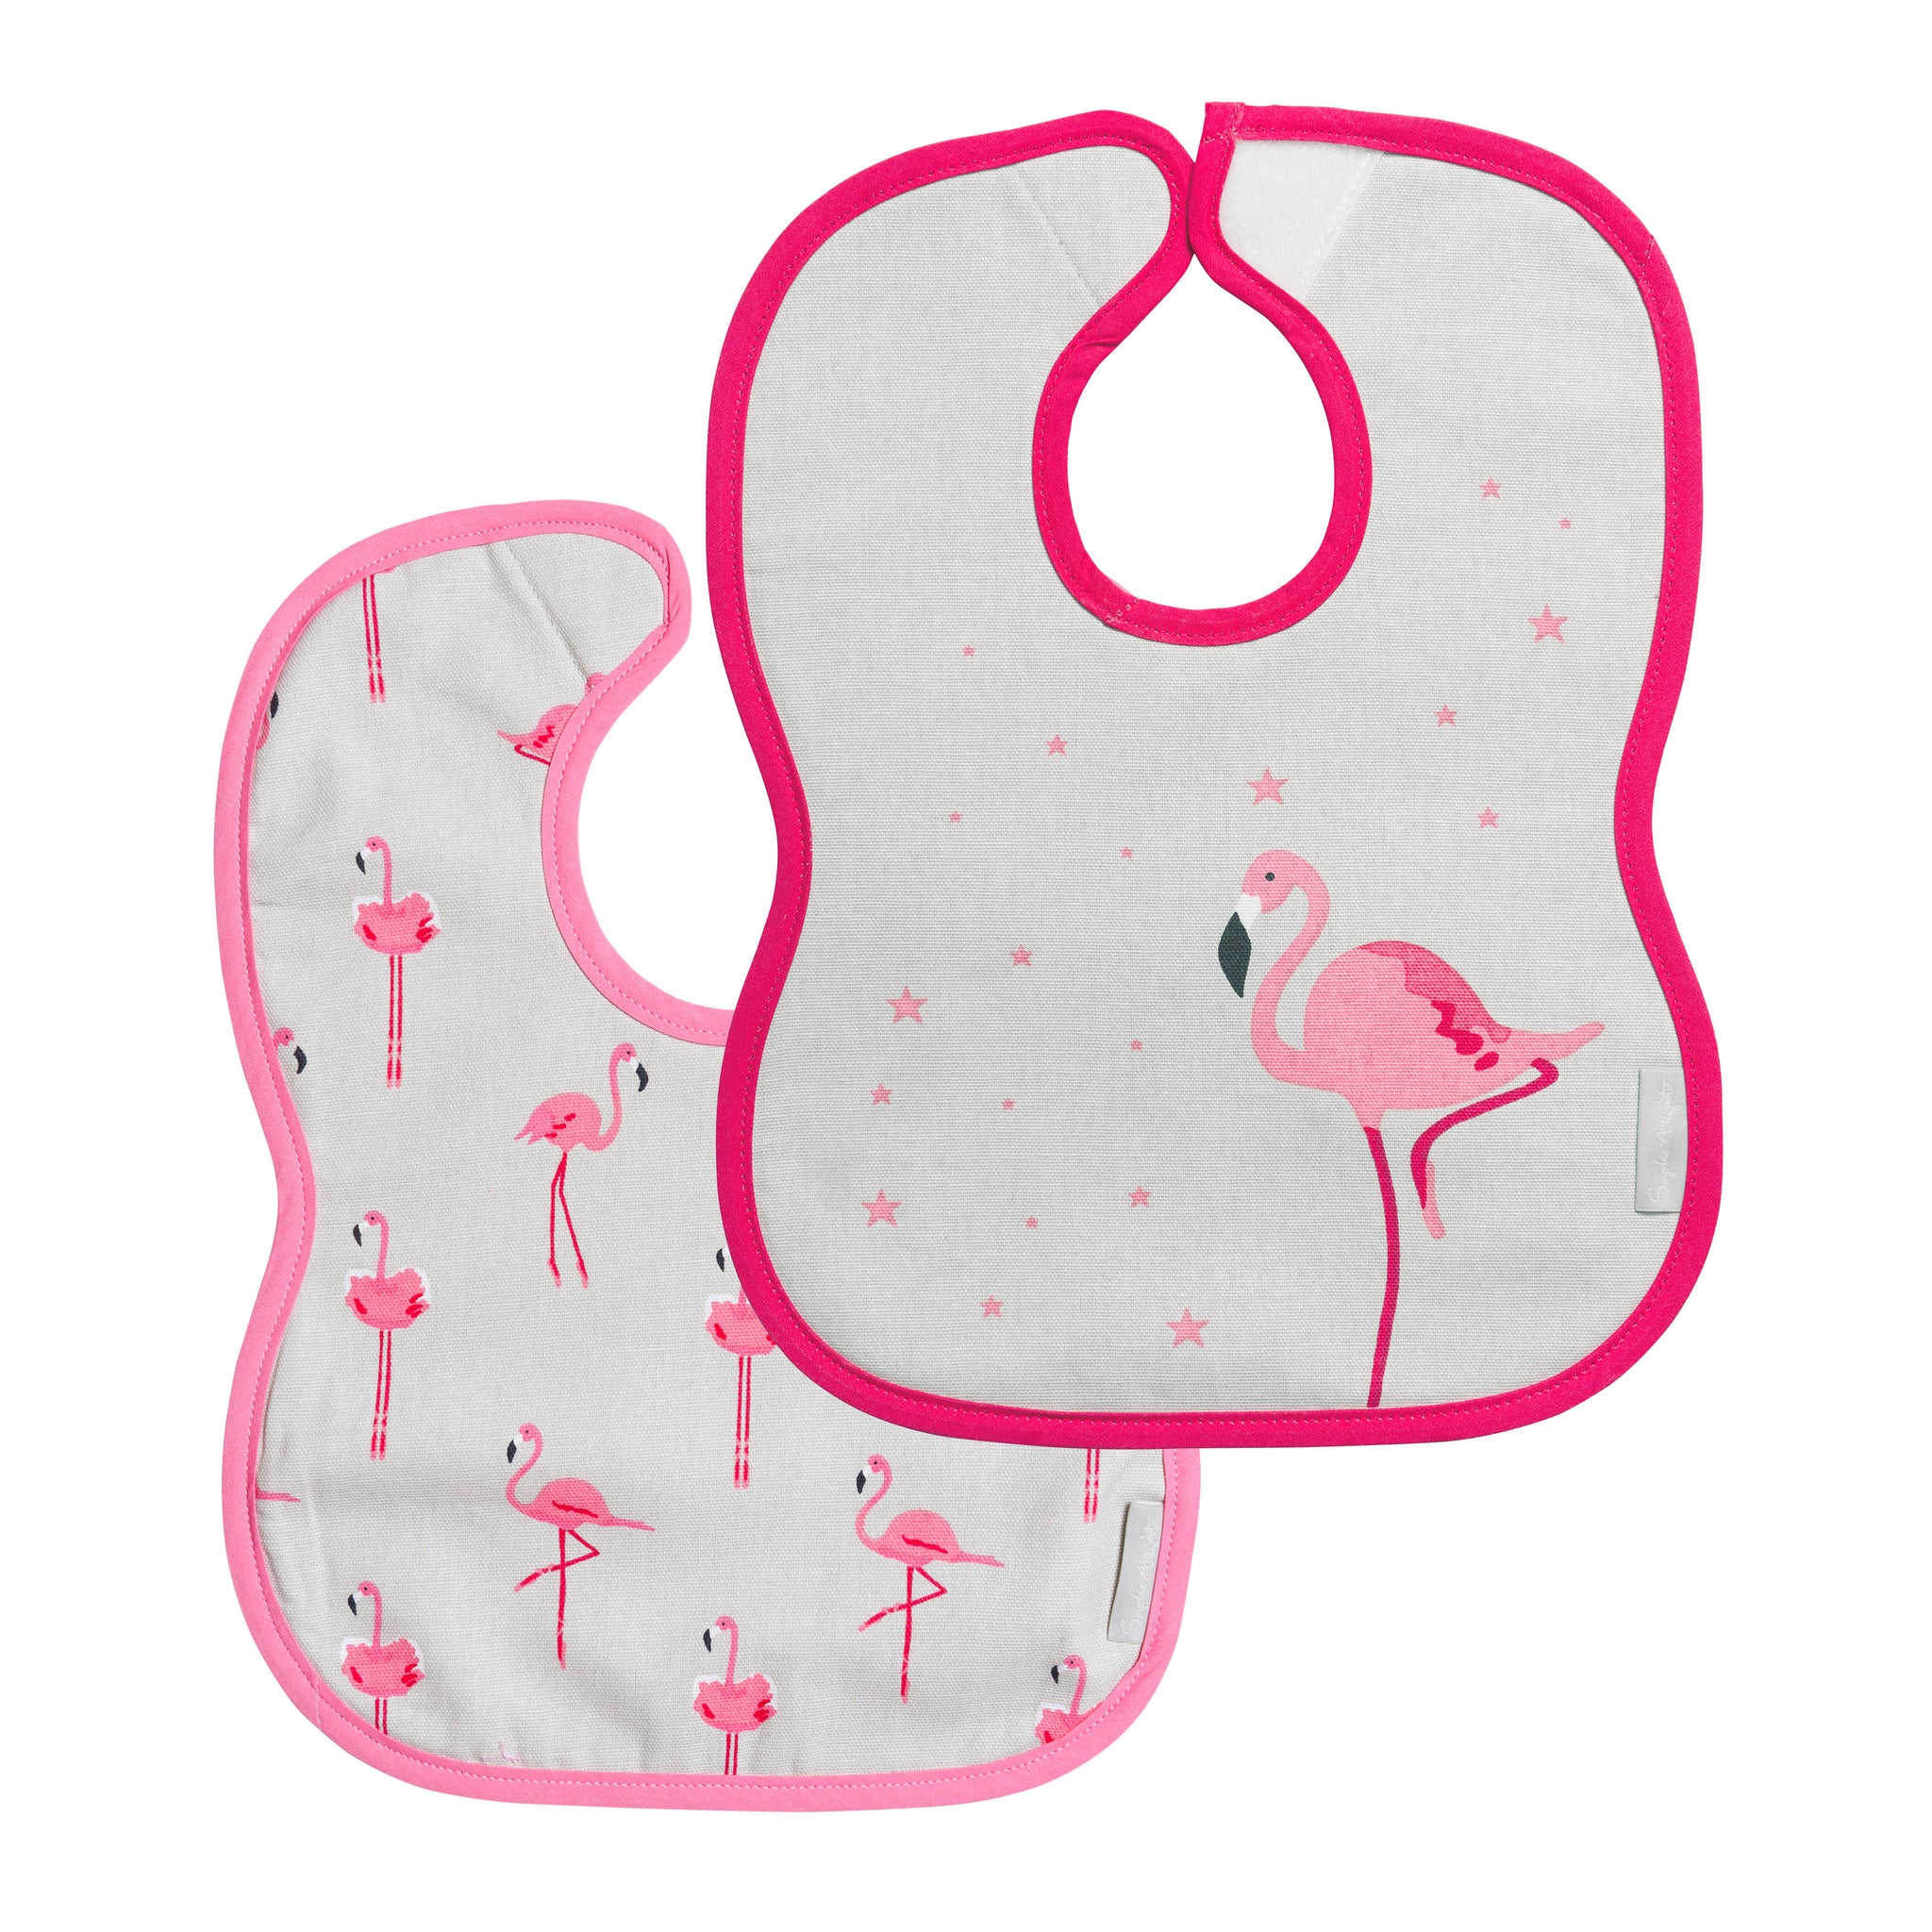 Flamingos Bibs (Set of 2)